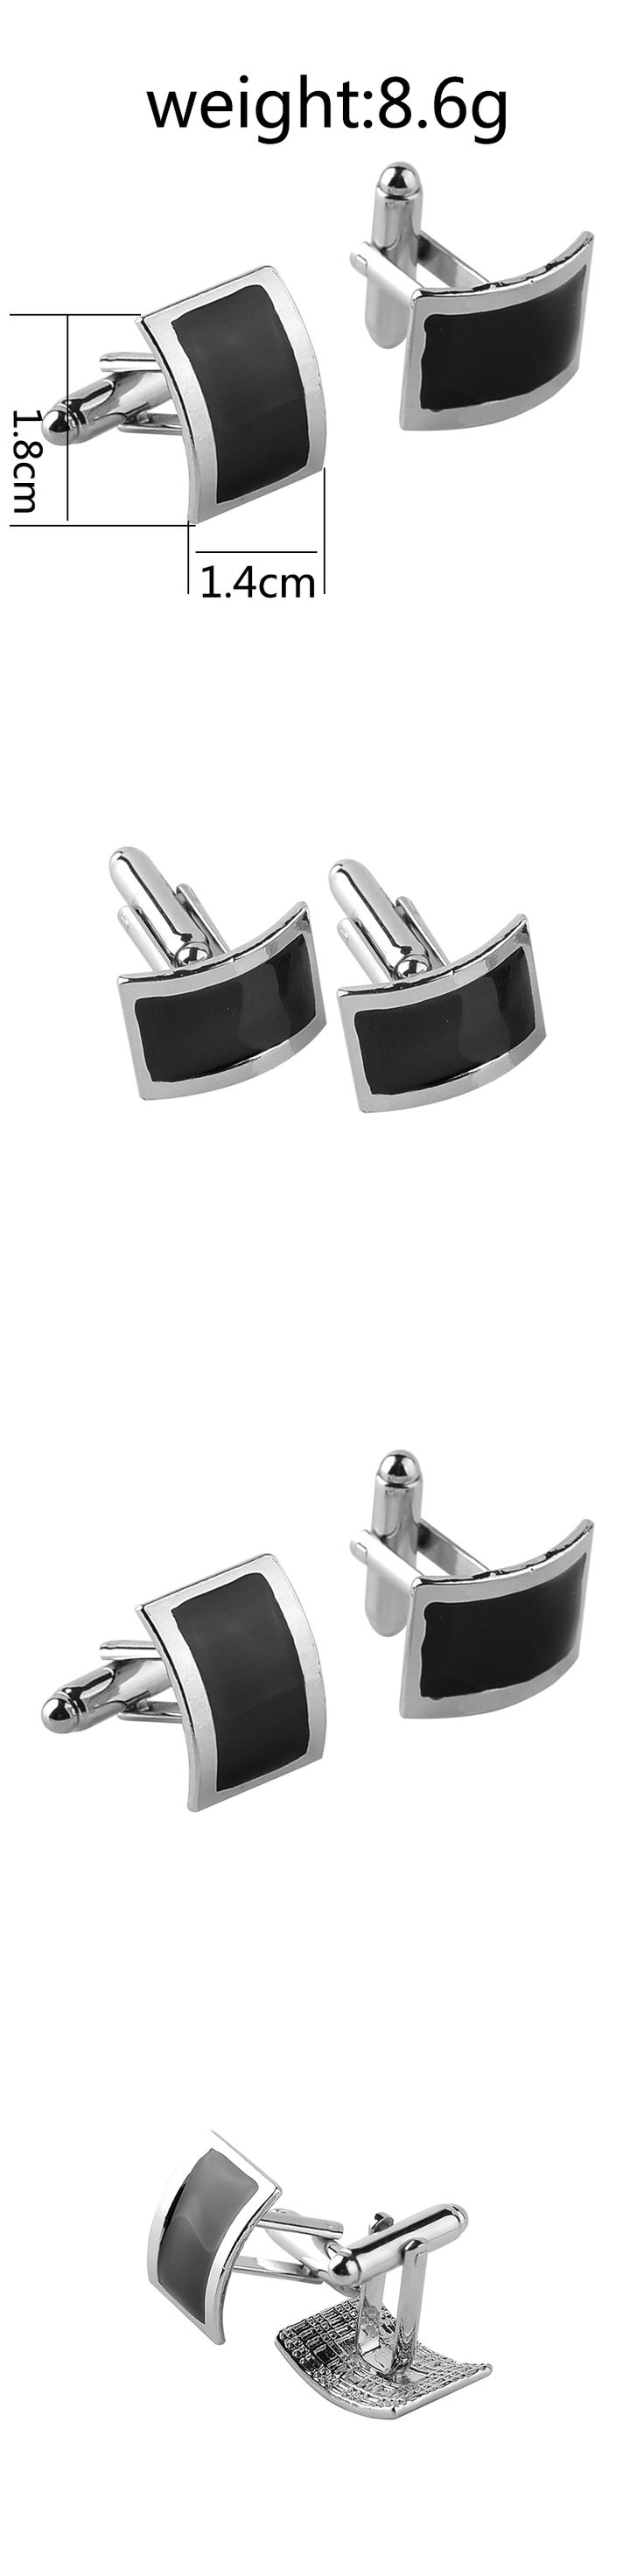 2017 Gemelos Gemelos Para Camisas Tie Clip French Men Cufflinks Sell Like Hot Cakes The Rip Shirt Cuff